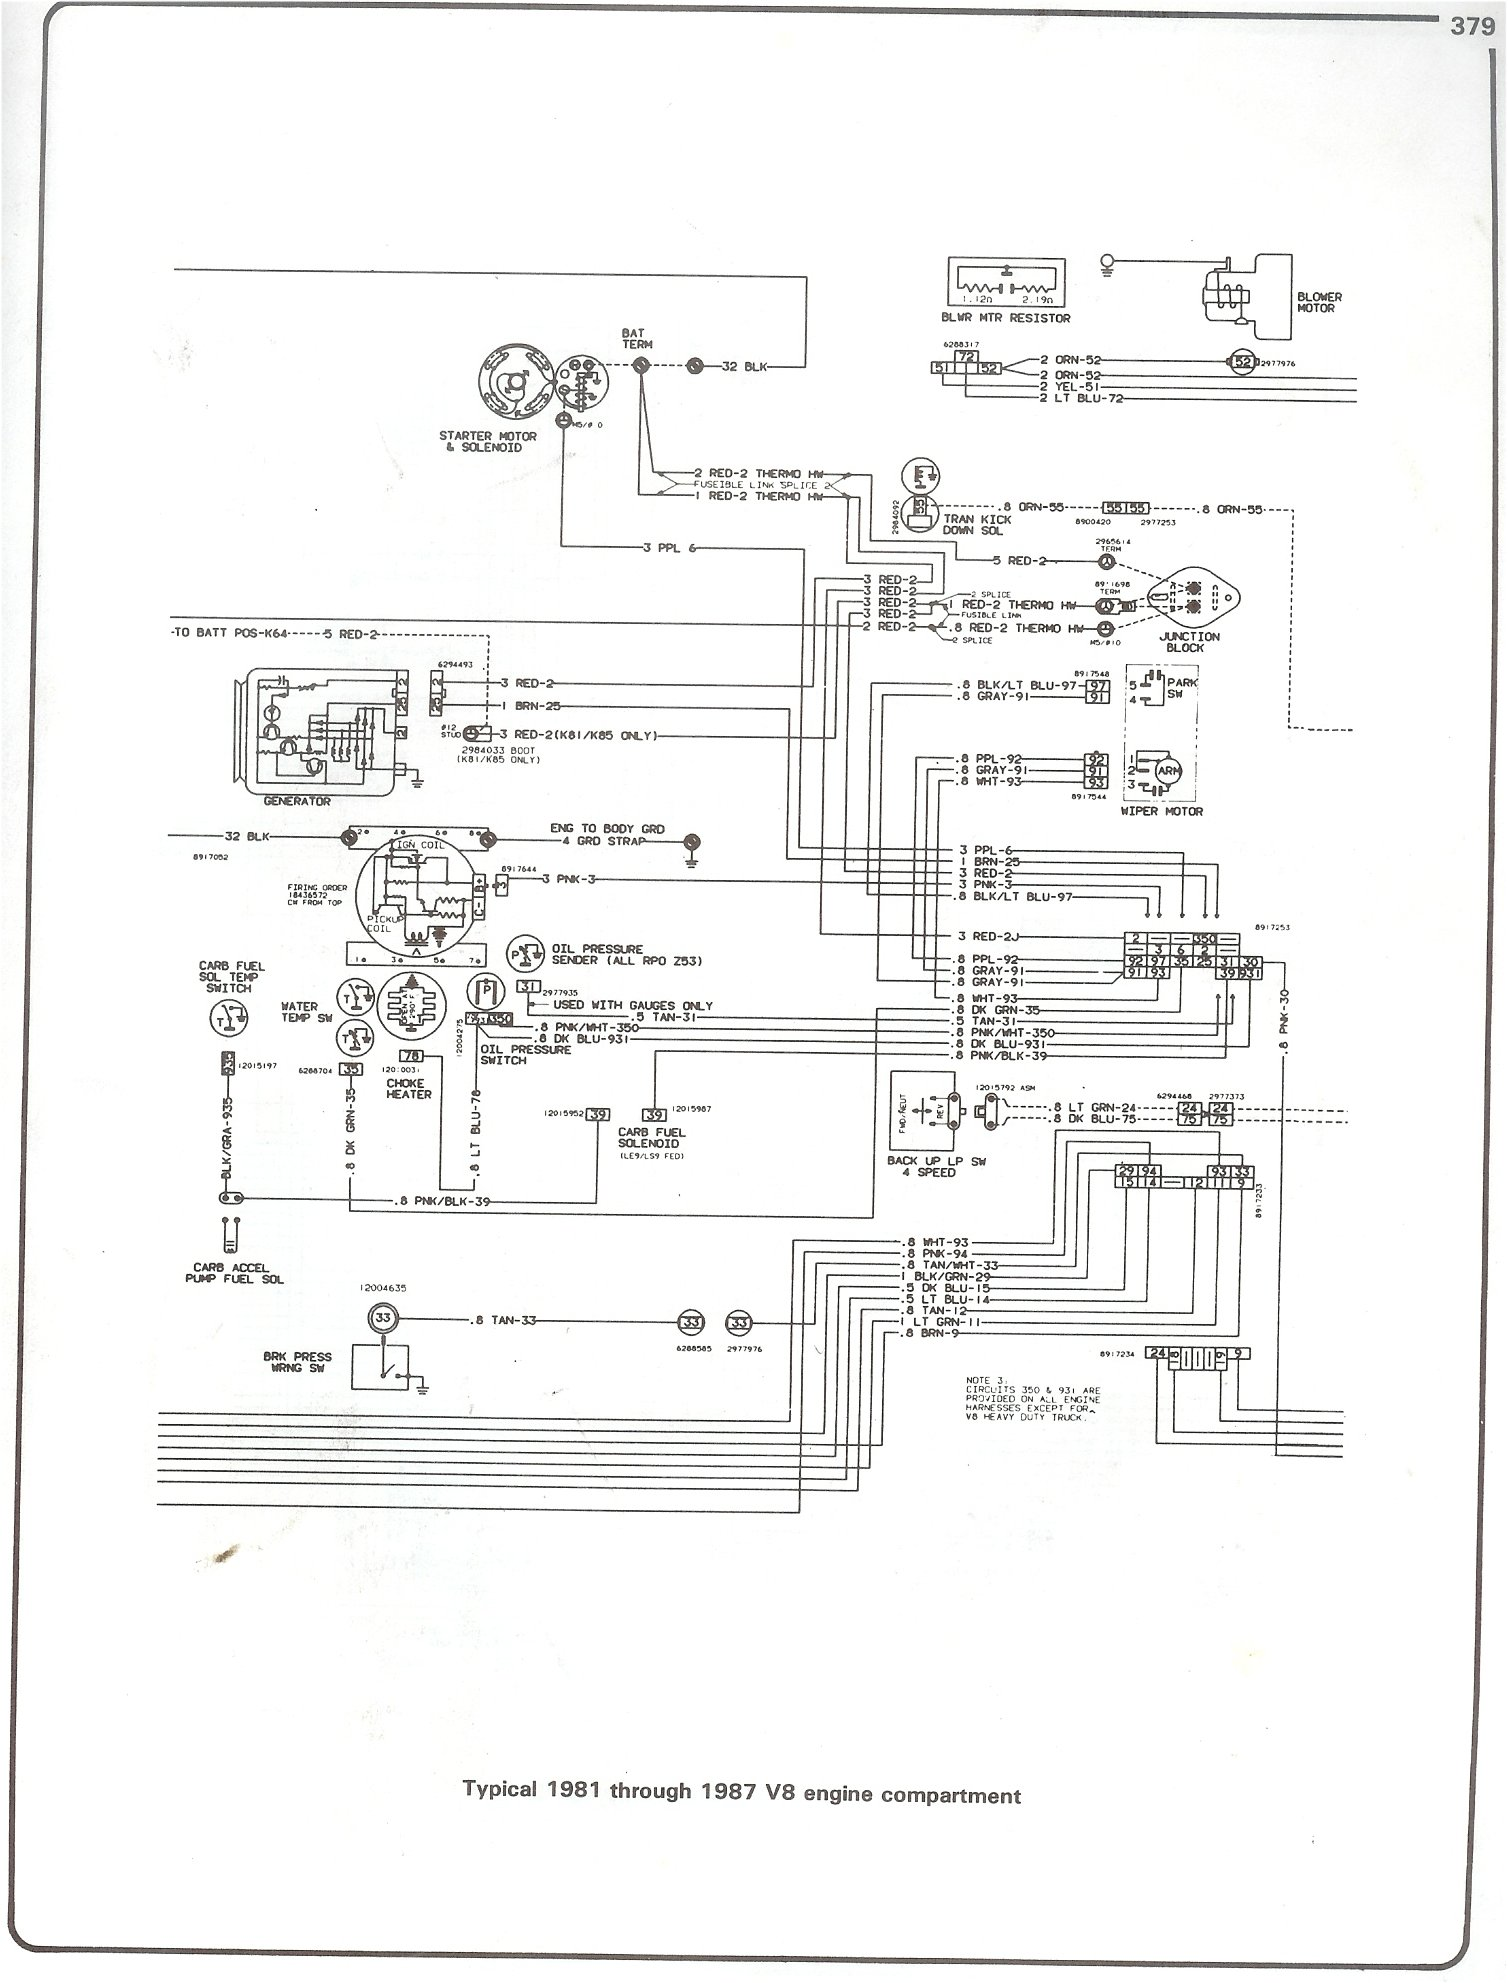 1979 c10 wiring diagram wiring diagrams1979 chevy truck wiring diagram wiring diagrams 1979 gmc truck wiring 1979 c10 wiring diagram